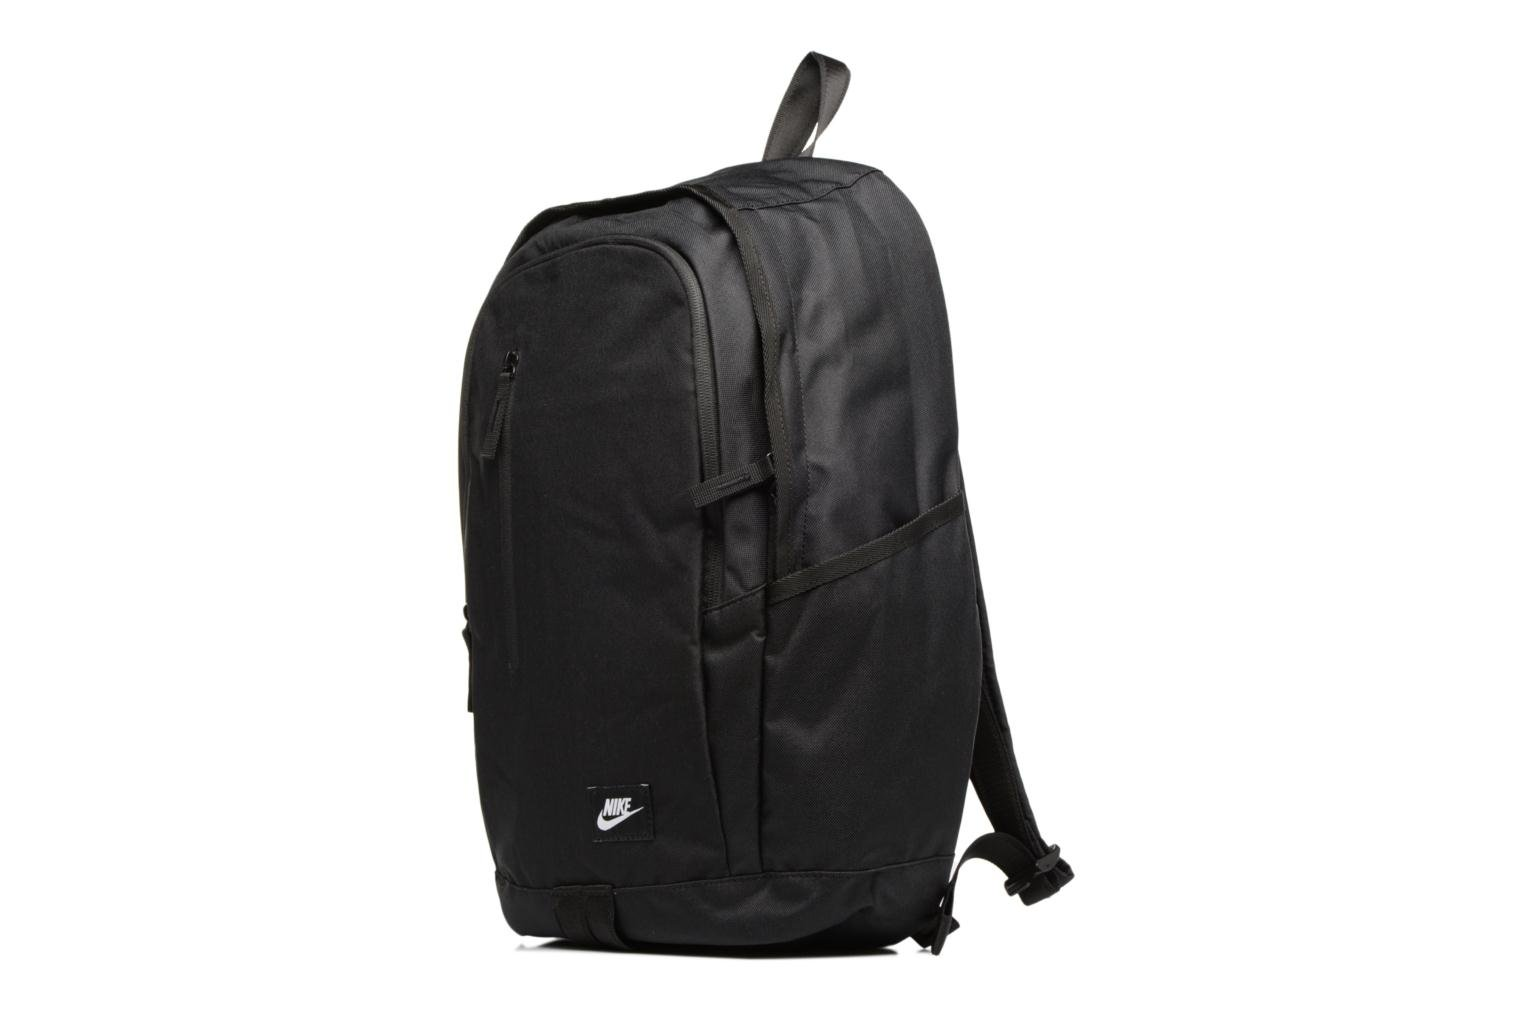 Nike Soleday Backpack S Black/black/white